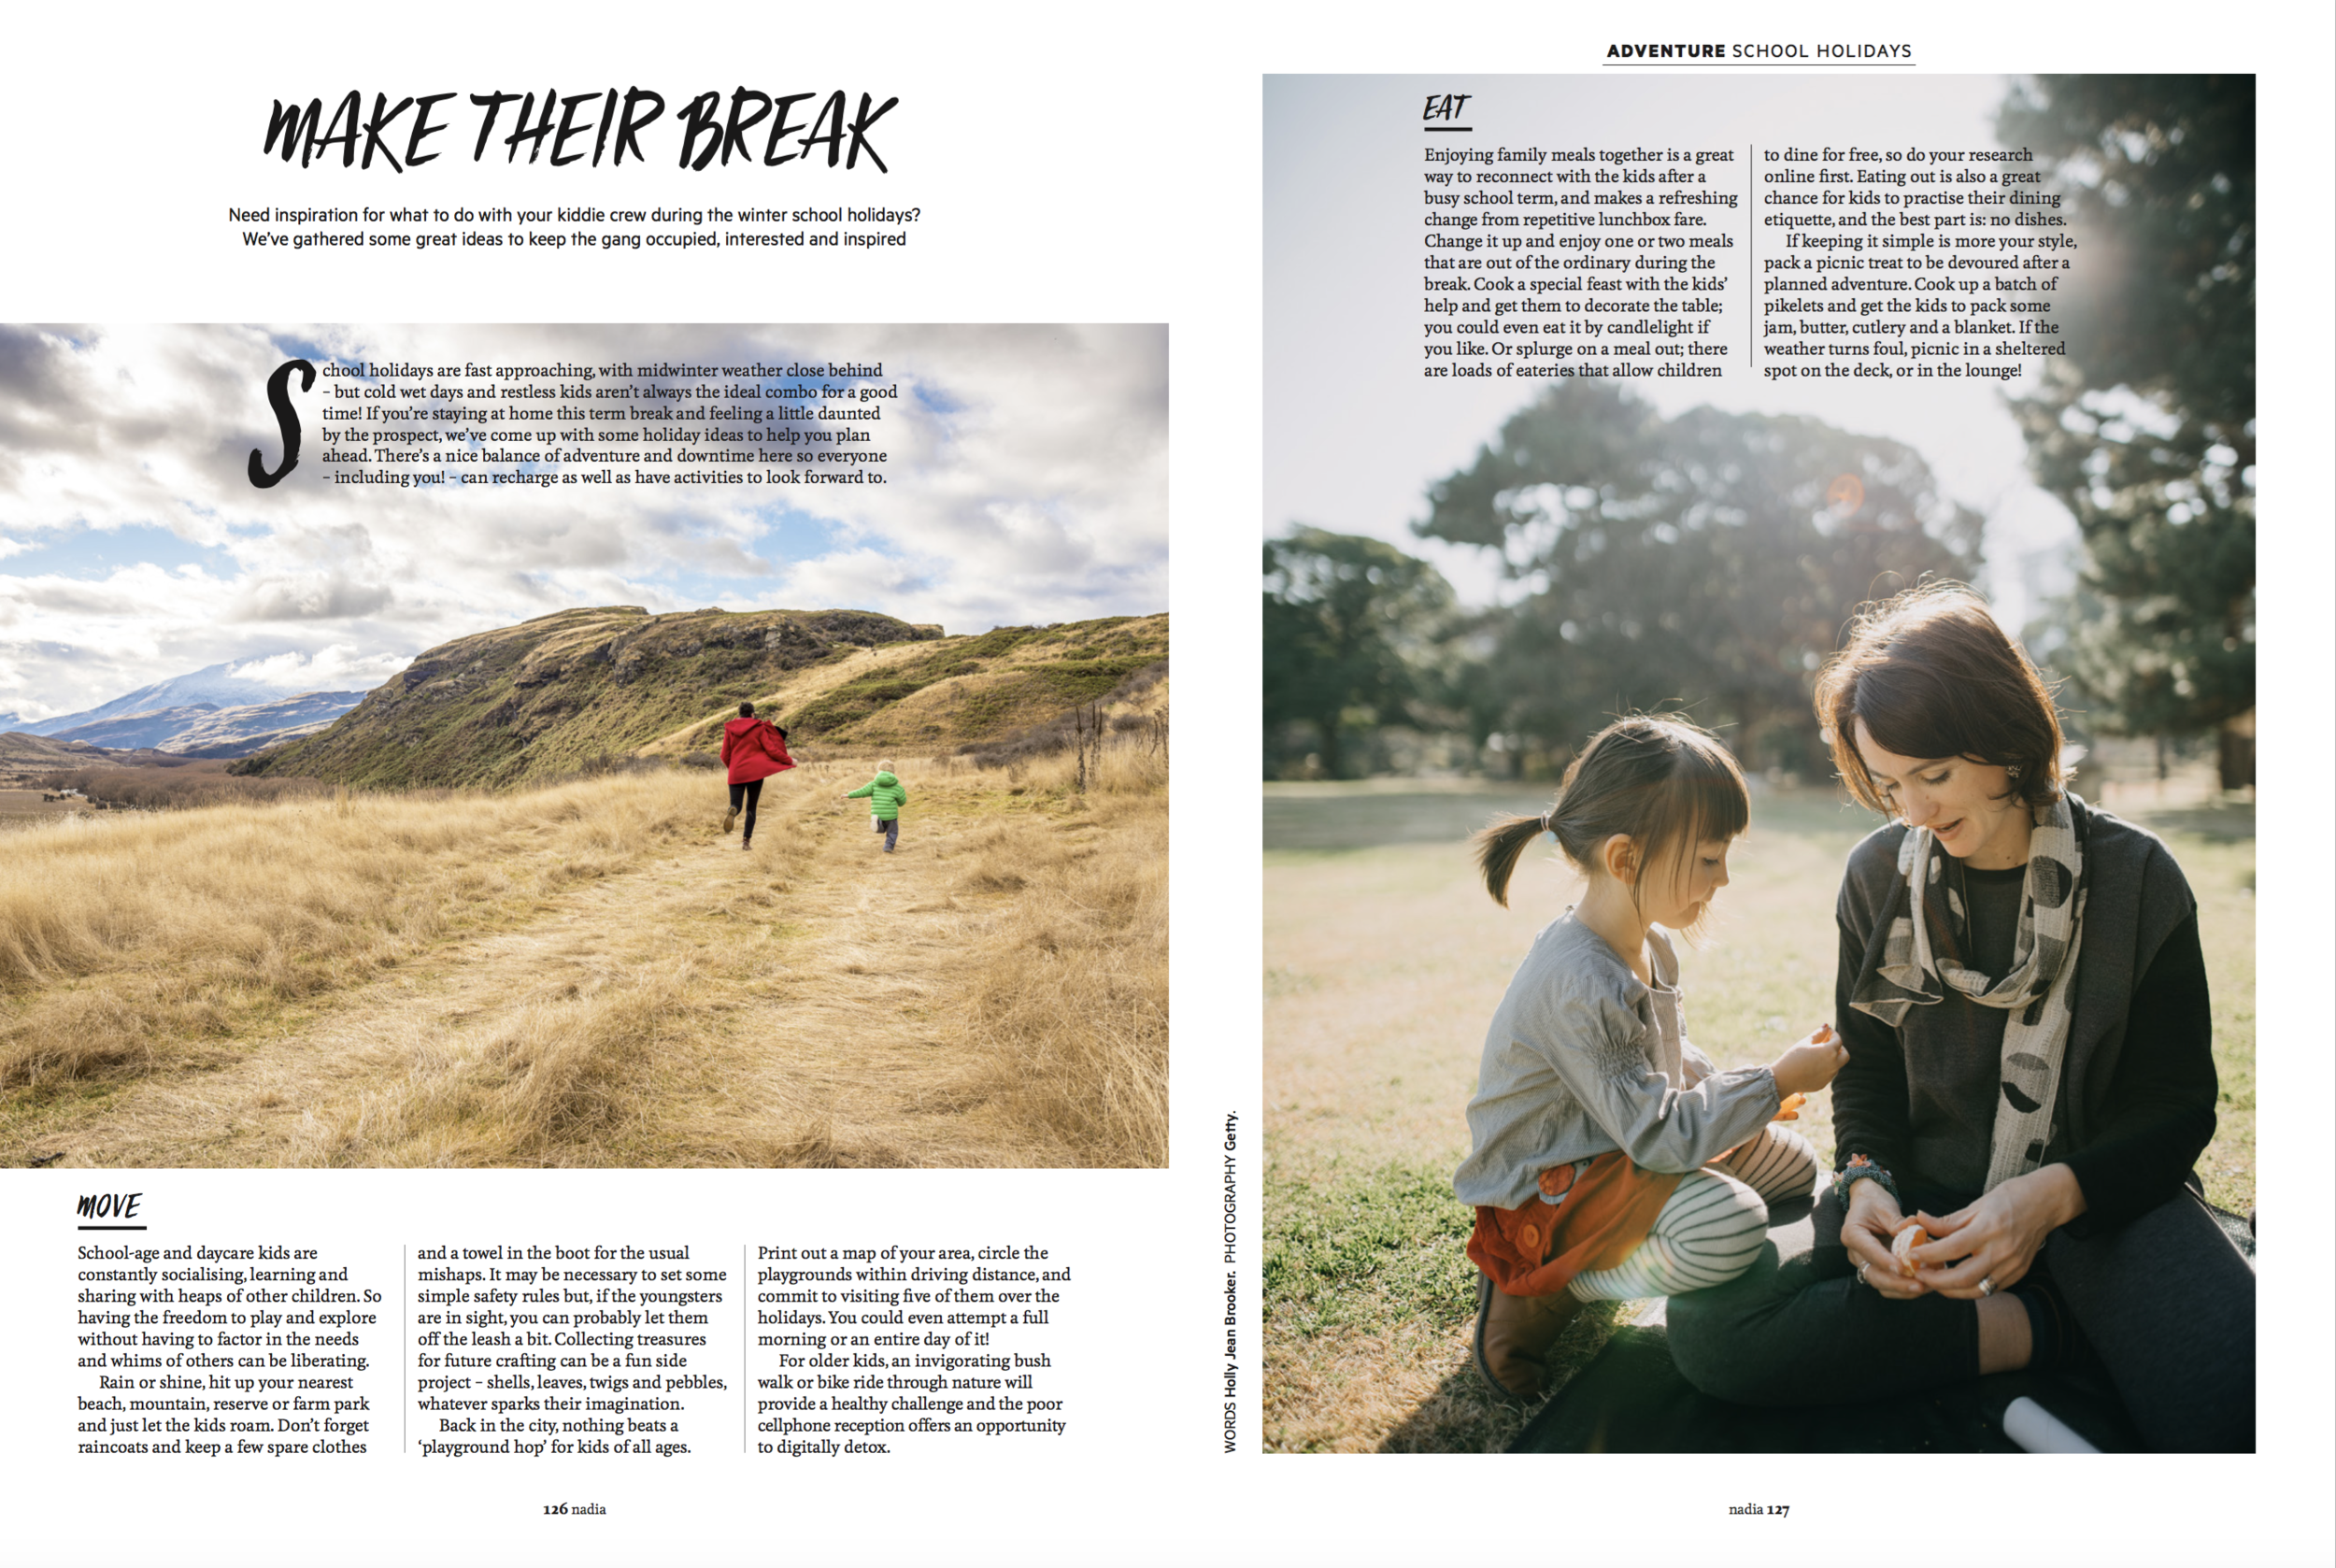 Nadia Magazine June/July 2018 - Inspo for the school holidays to keep the gang occupied, interested and inspired.Words by Holly Jean Brooker